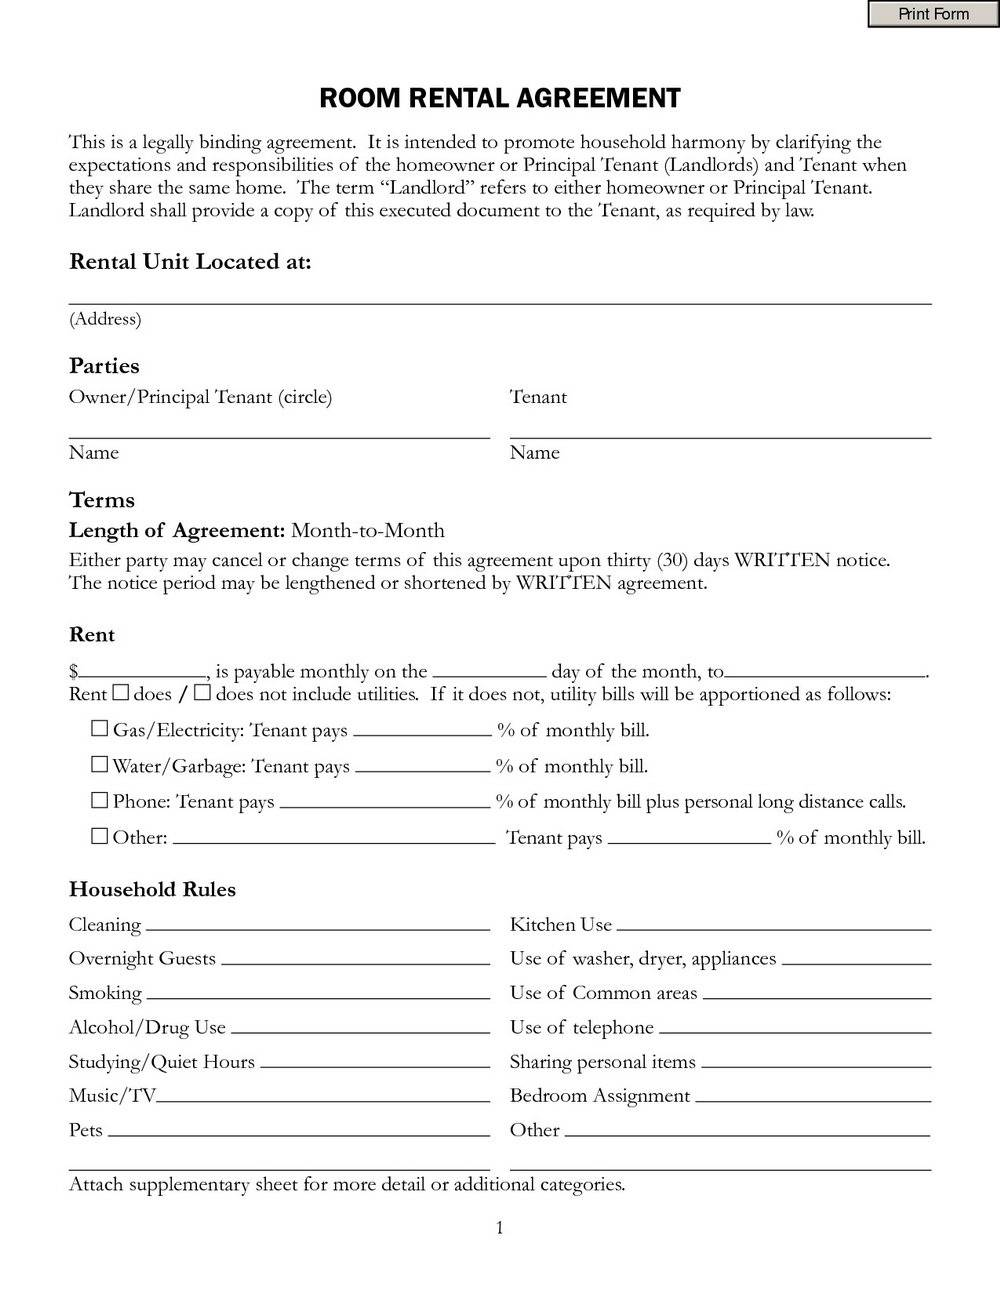 Room Rental Agreement Template Doc